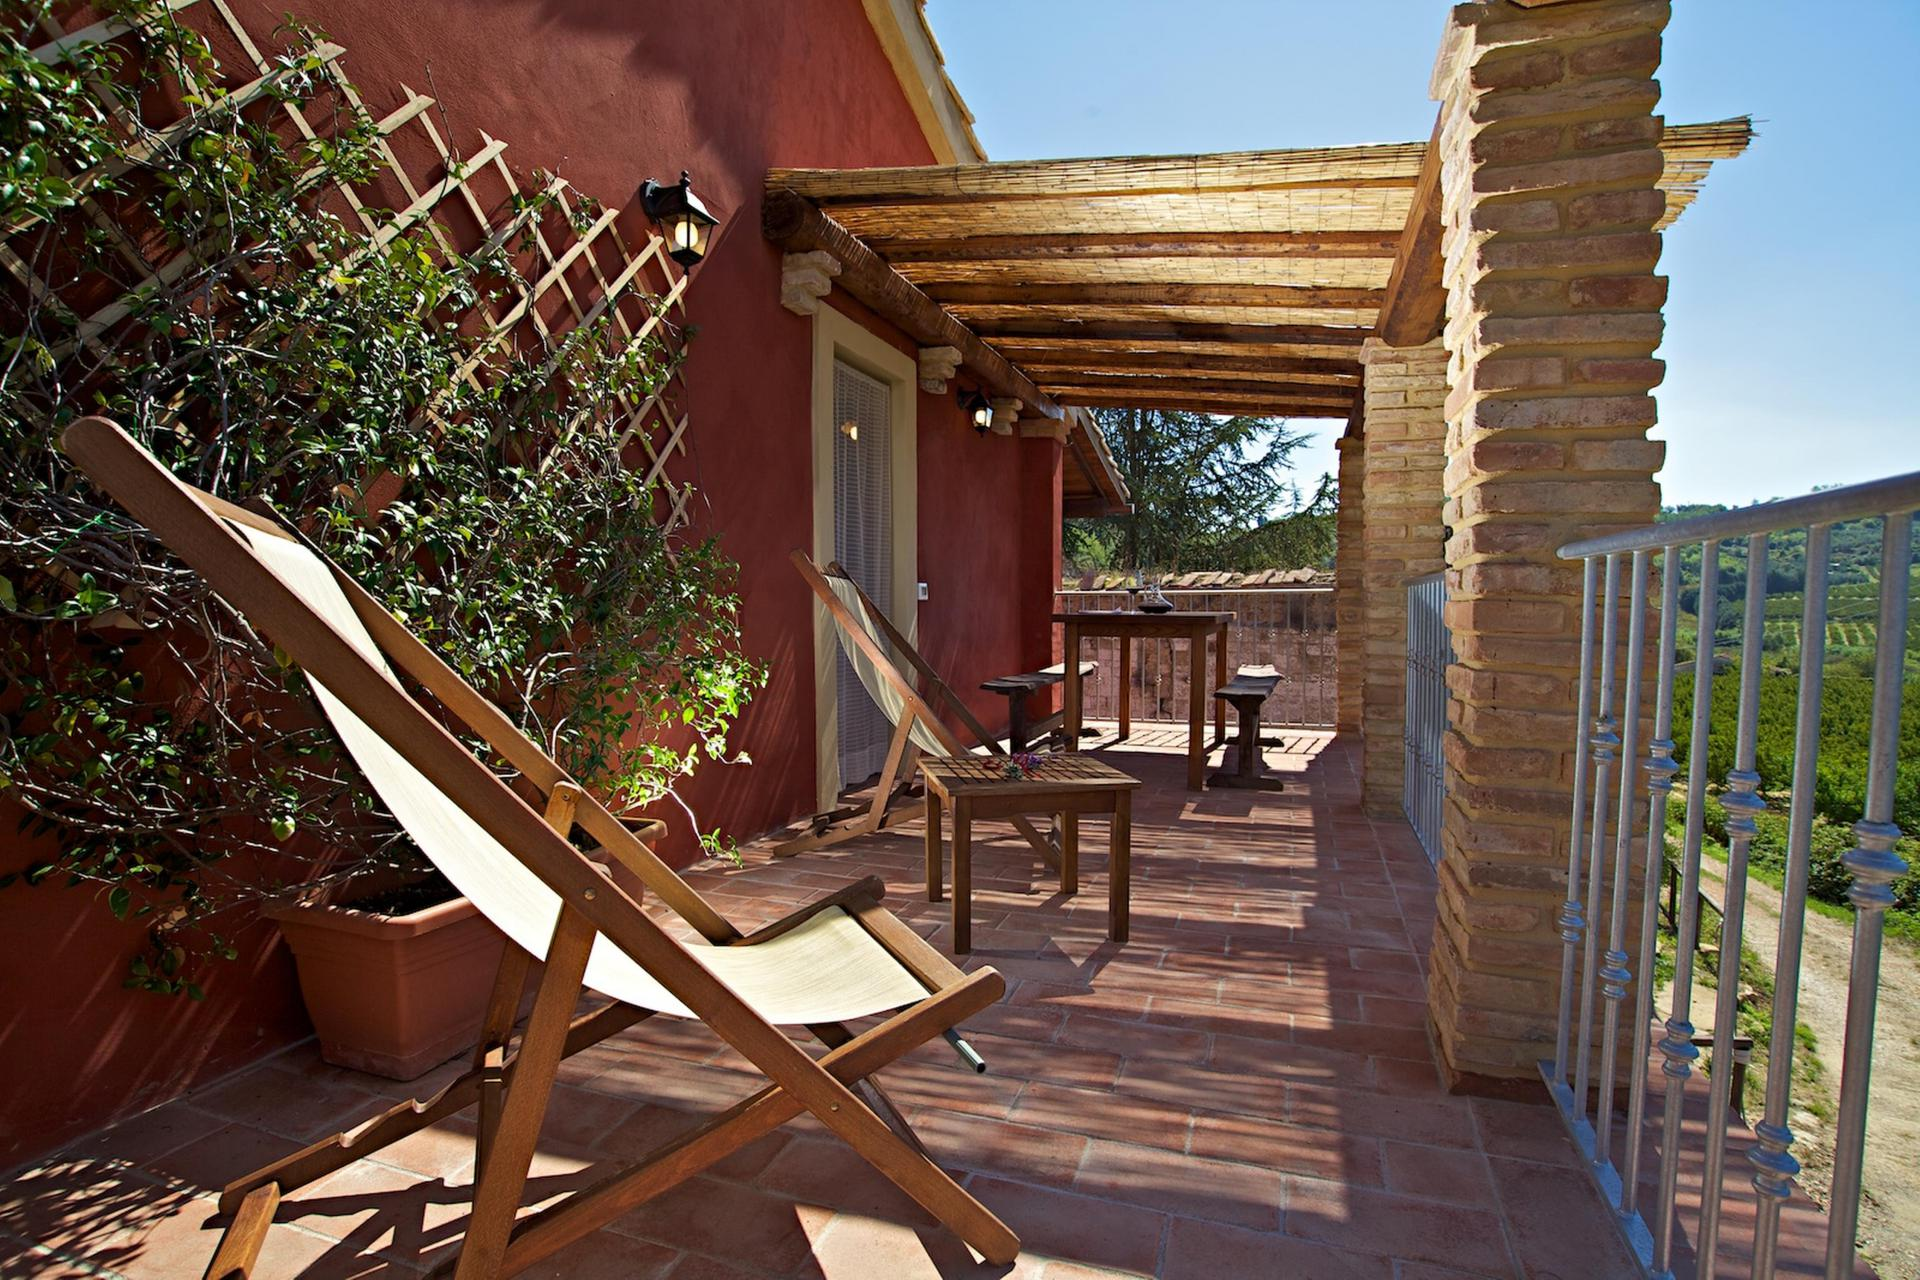 Agriturismo Tuscany Child-friendly agriturismo in Tuscany with restaurant